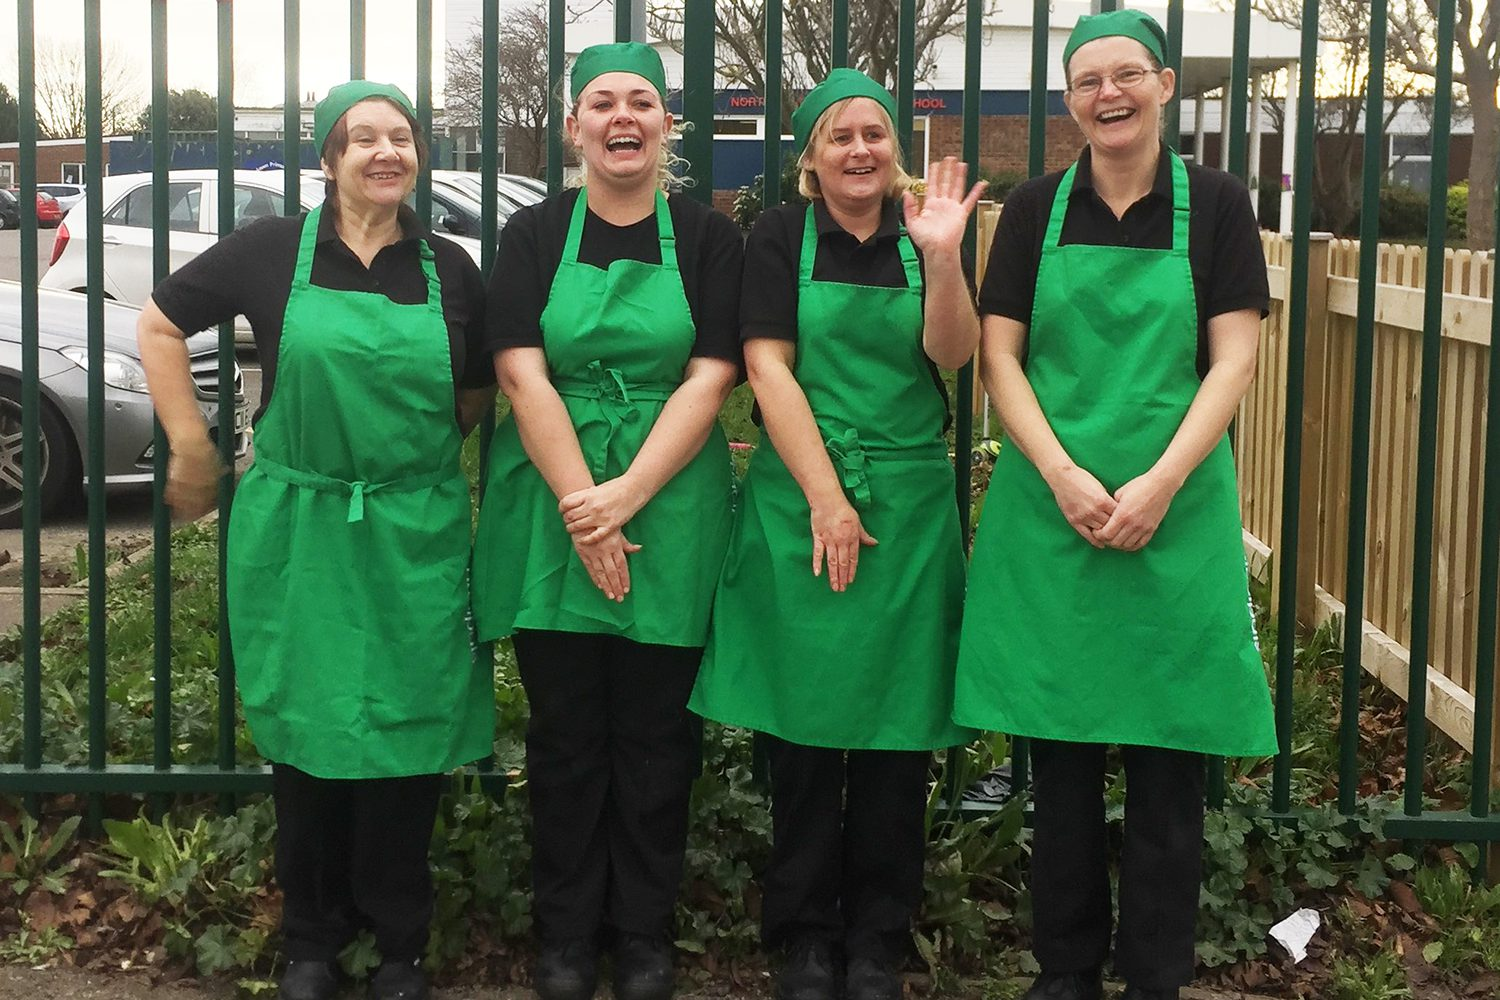 Principals by CH&CO spreads festive cheer with a Christmas community pop-up at a Margate primary school